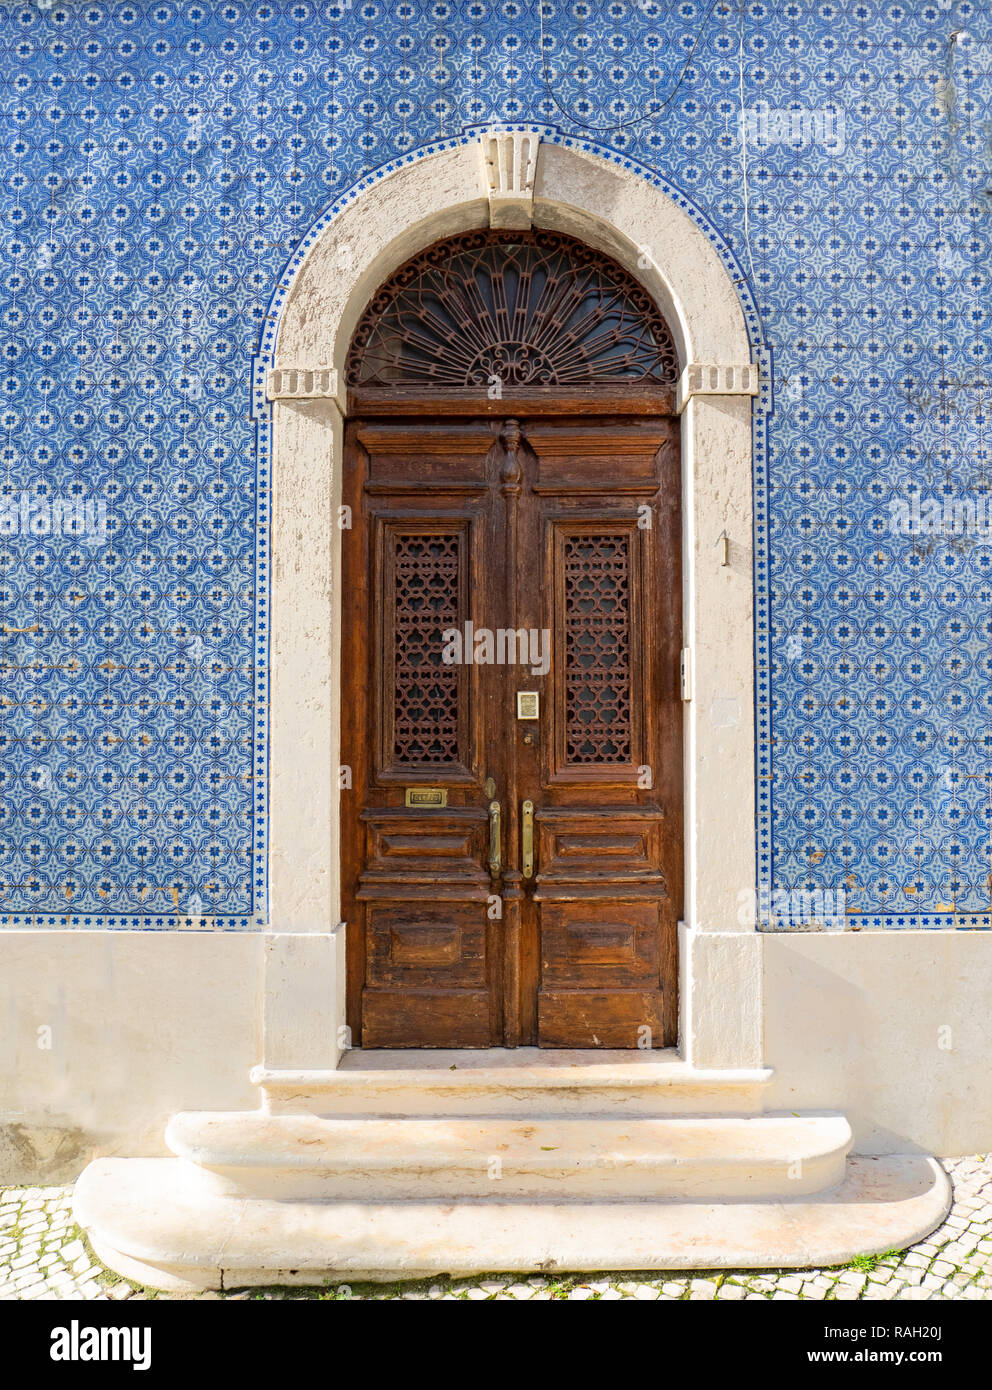 Lisbon - Portugal, facade of a house covered with typical blue tiles, azulejos, and ancient decorated wooden door - Stock Image